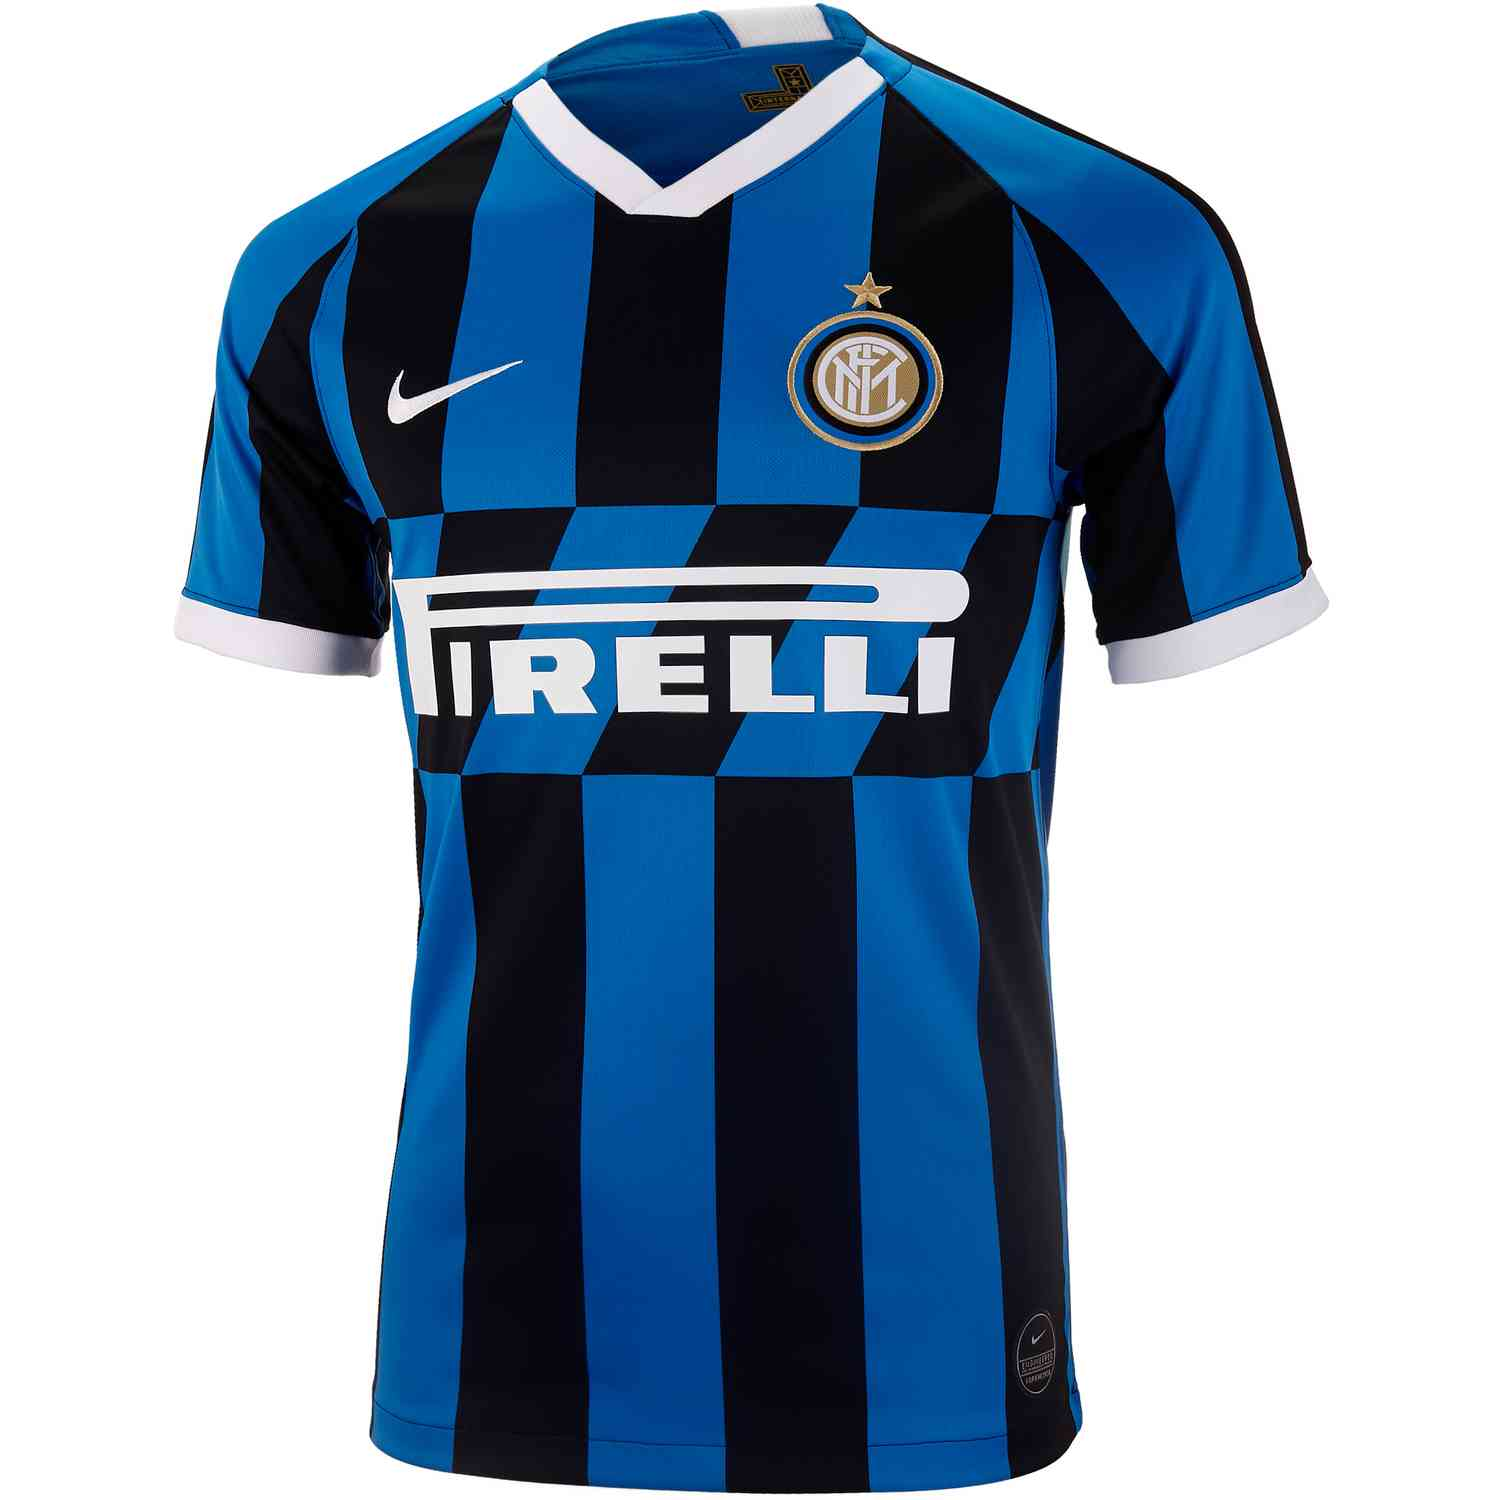 official photos 715f7 0fb91 2019/20 Nike Inter Milan Home Jersey